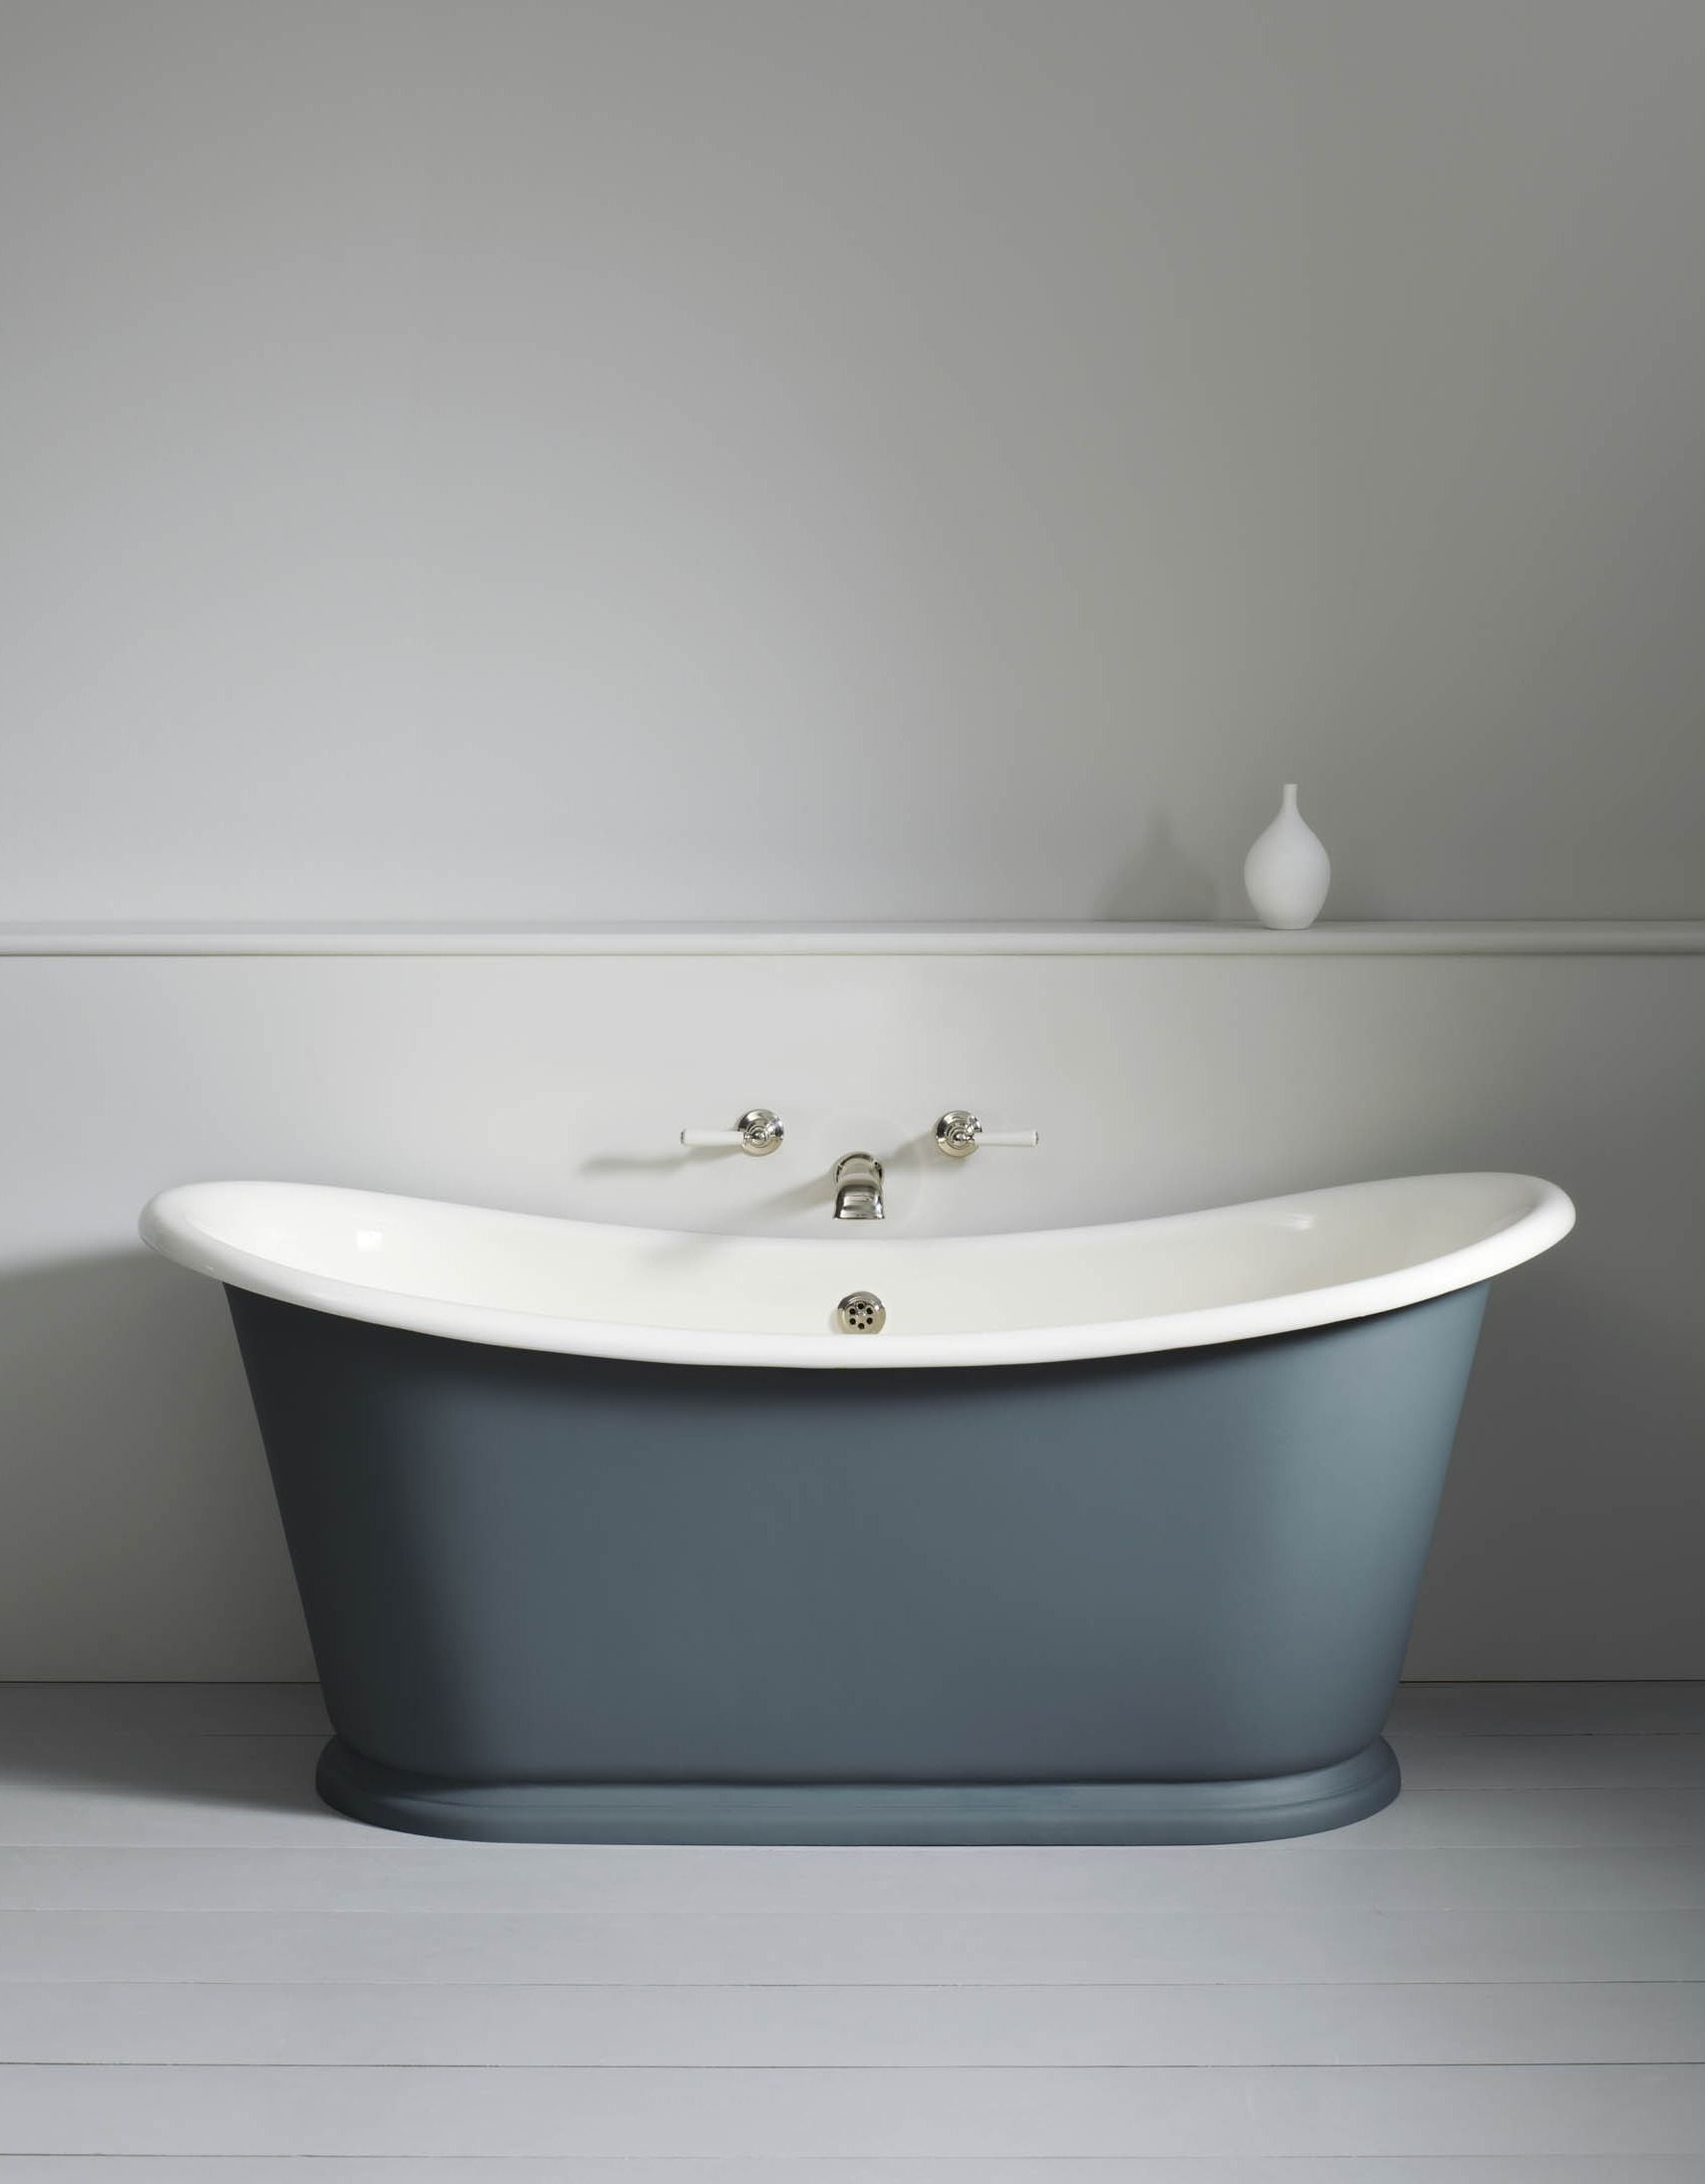 Bath Taps: Bateau Bath With Wall Mounted Taps On False Wall Forming A